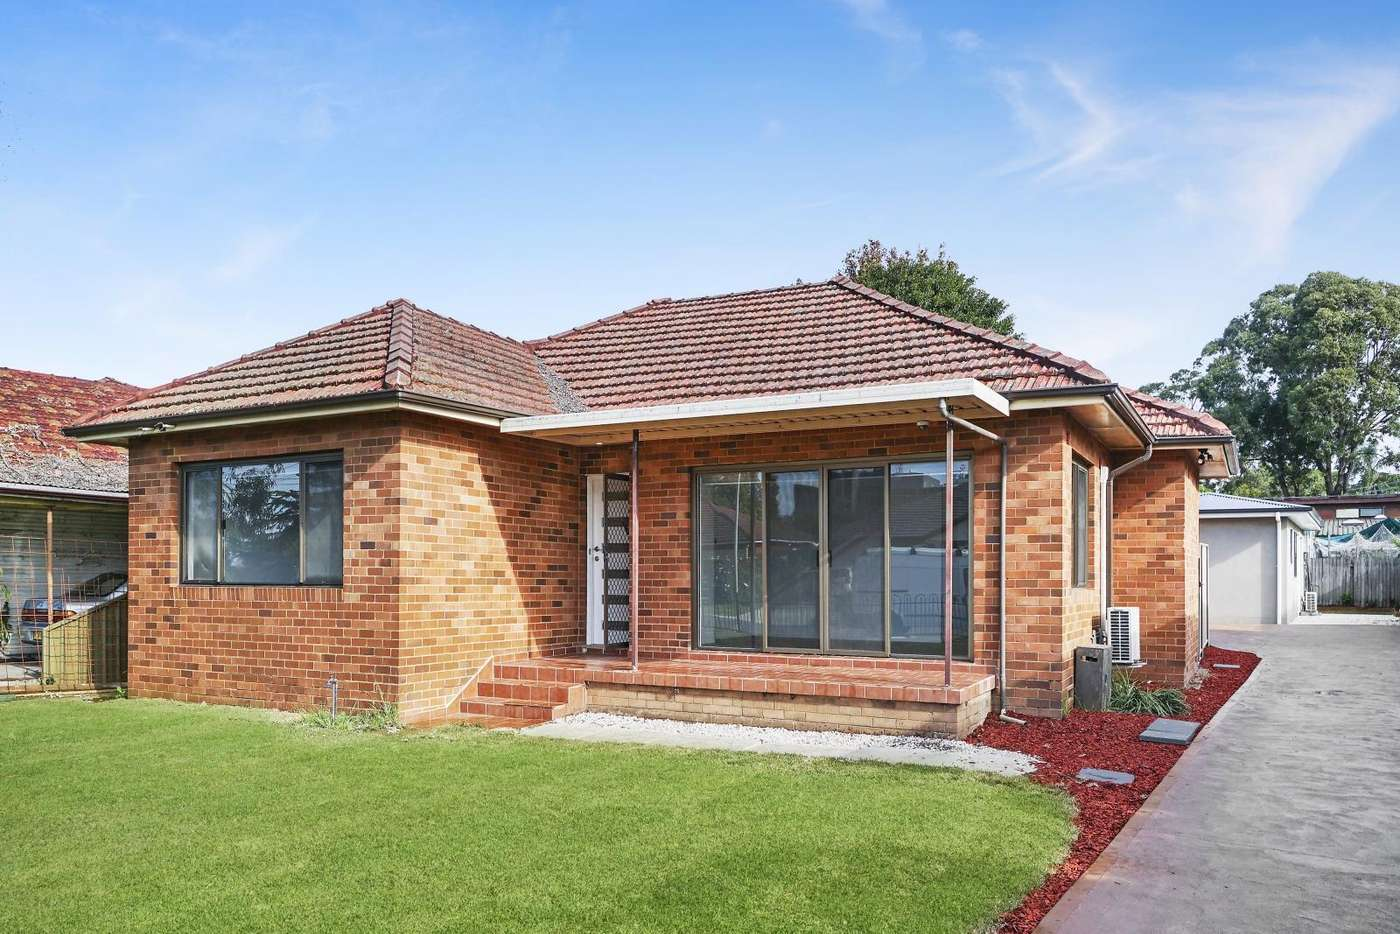 Main view of Homely house listing, 12 Allengrove Crescent, North Ryde NSW 2113